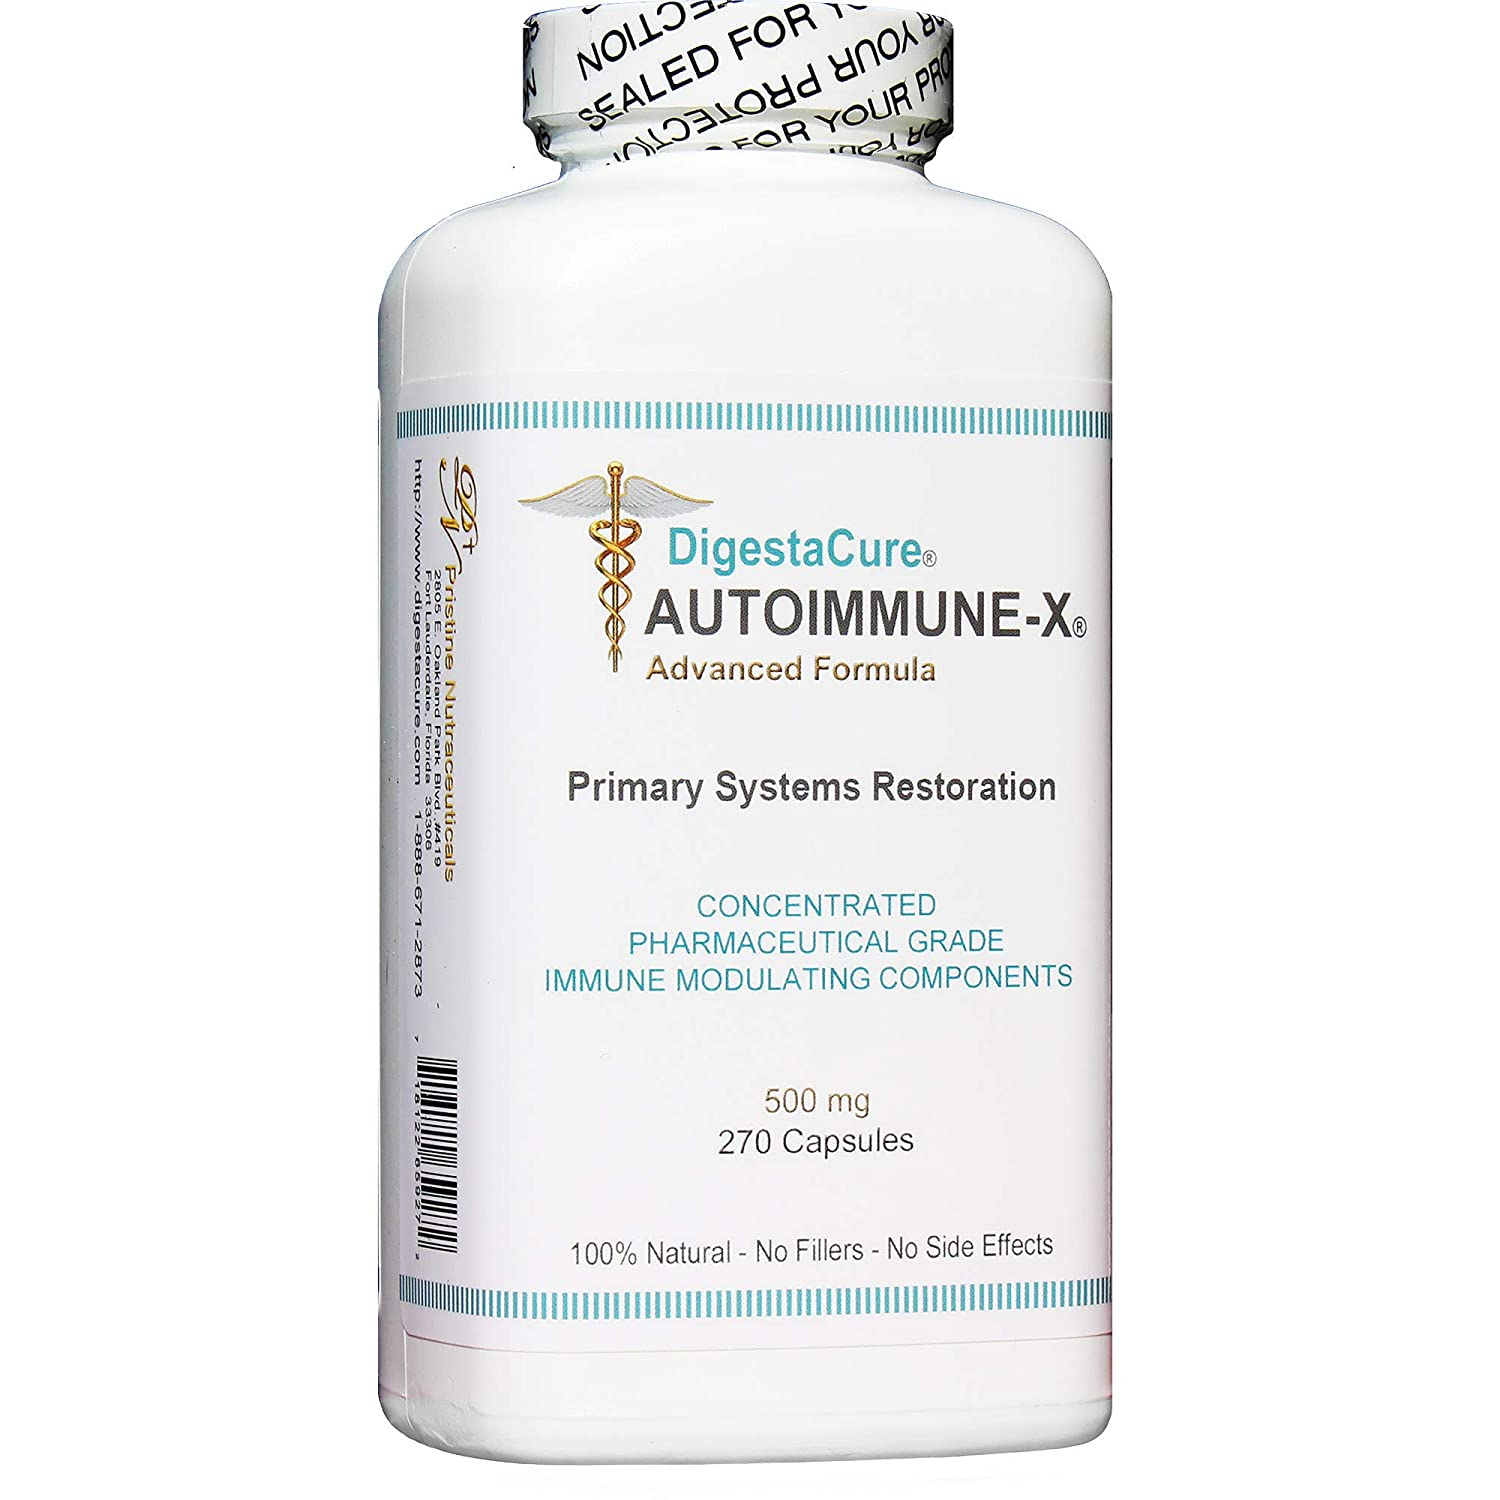 DigestaCure AUTOIMMUNE-X Advanced Formula Concentrated Immune Modulating Components. All Natural. 270 Capsules.